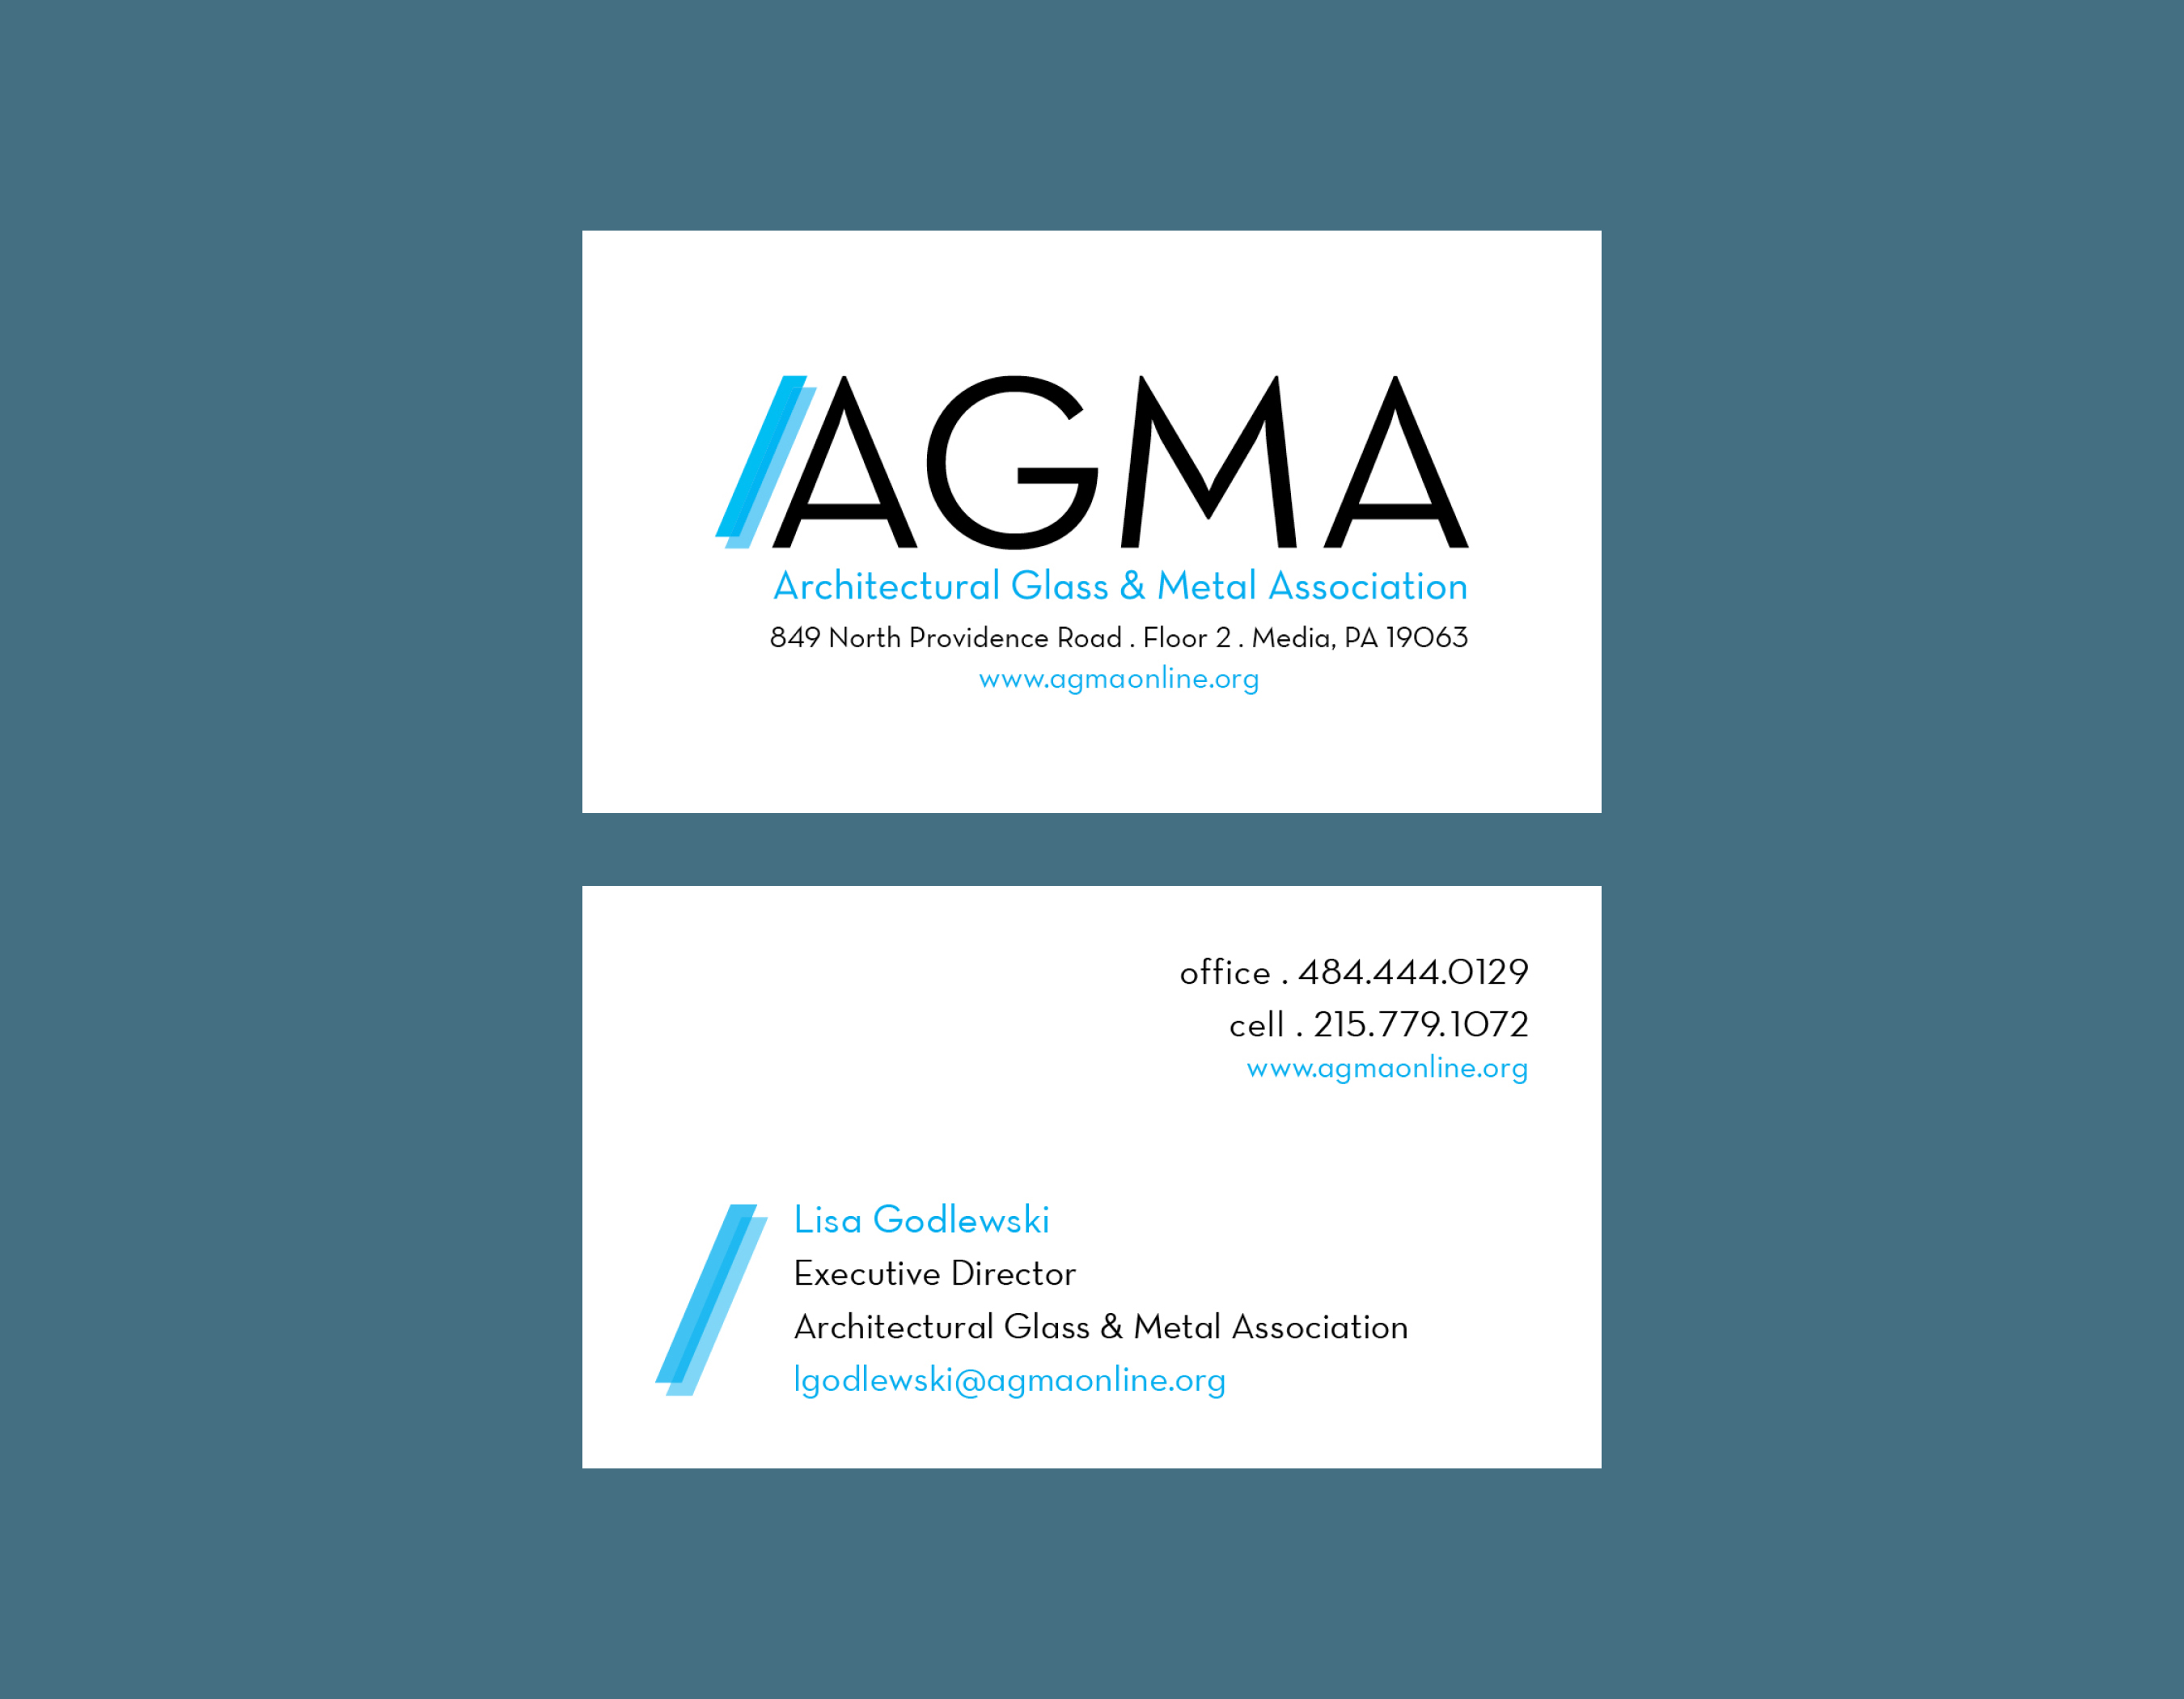 AGW Graphic Design - AGMA Identity and Cards